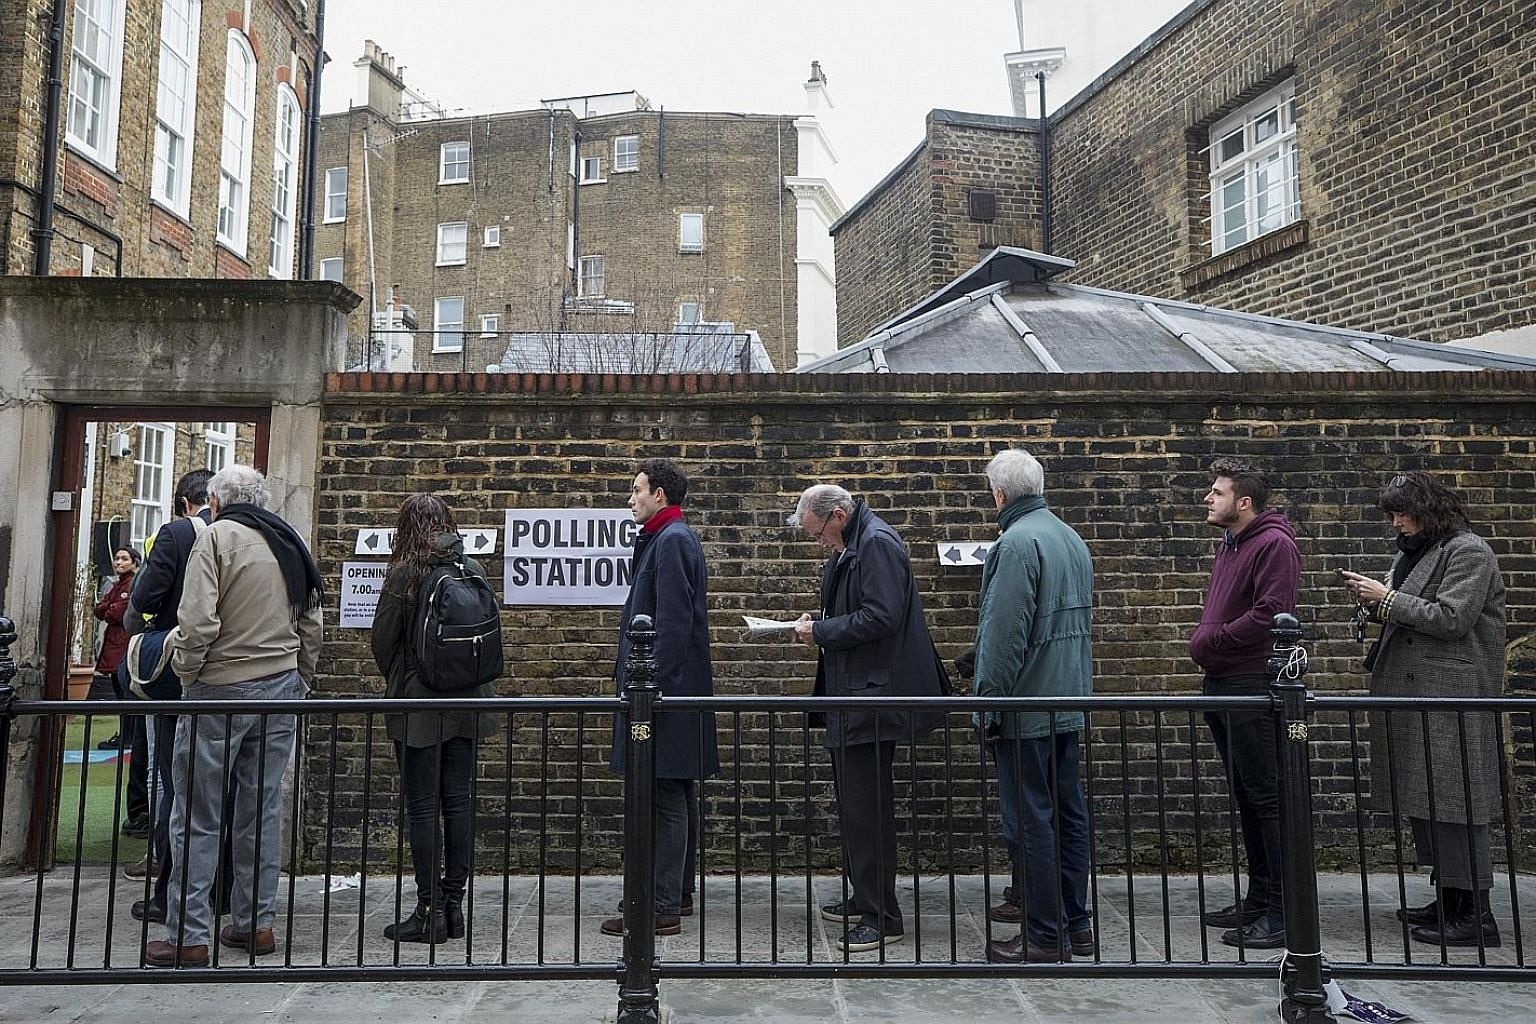 Voters queueing to enter a polling station in London. More than 4,000 polling venues across England, Scotland, Wales and Northern Ireland opened their doors yesterday for an election seen as one of the most important since the end of World War II.